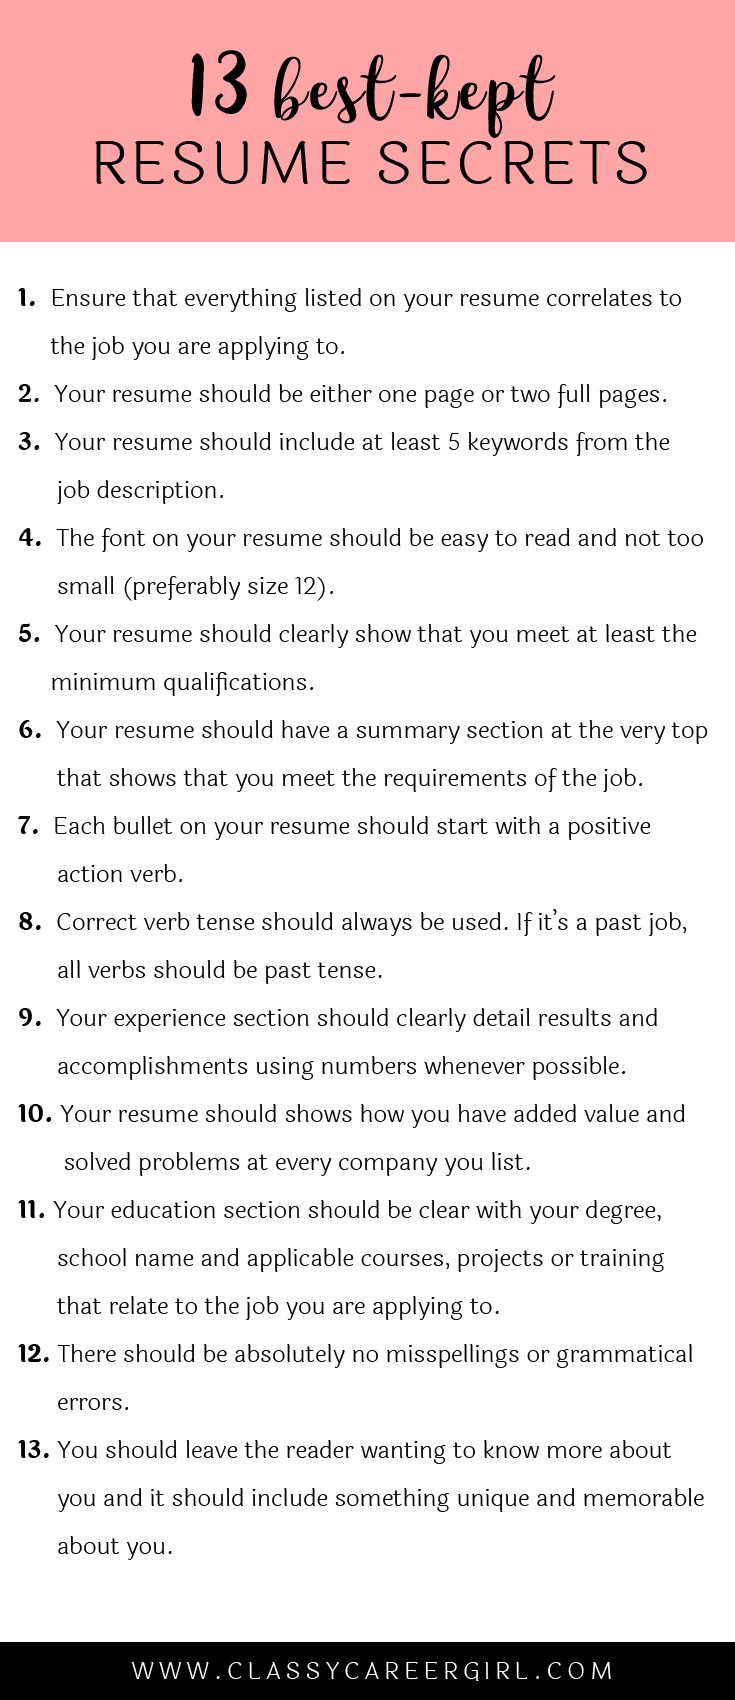 Opposenewapstandardsus  Unusual  Ideas About Resume On Pinterest  Cv Format Resume Cv And  With Fair Some Hiring Managers Will Toss Your Resume Out If You Dont Know These  With Charming Sample Objectives For Resume Also Cashier Job Description Resume In Addition Adjectives For Resumes And Resume Download As Well As How To Write A Professional Resume Additionally Find Resumes From Pinterestcom With Opposenewapstandardsus  Fair  Ideas About Resume On Pinterest  Cv Format Resume Cv And  With Charming Some Hiring Managers Will Toss Your Resume Out If You Dont Know These  And Unusual Sample Objectives For Resume Also Cashier Job Description Resume In Addition Adjectives For Resumes From Pinterestcom